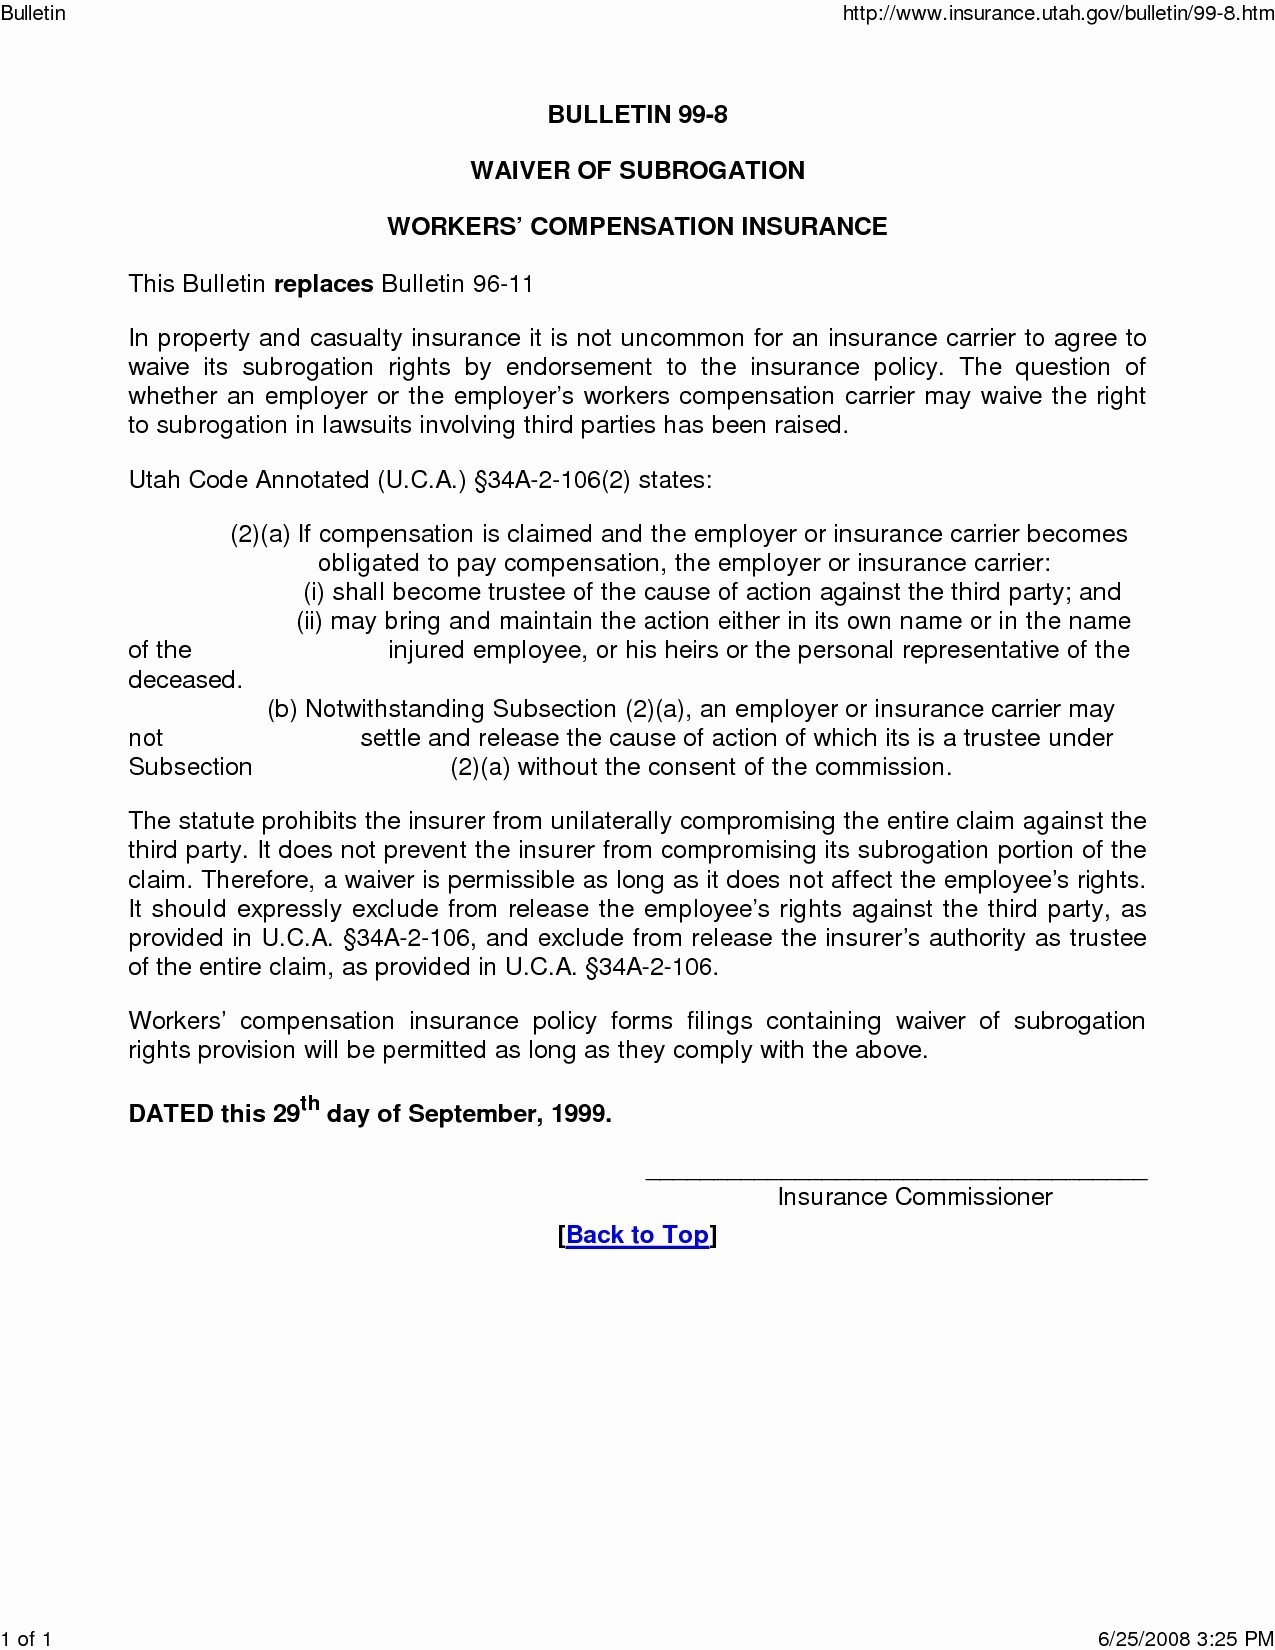 Subrogation Demand Letter Template - Valid Sample Certificate Insurance with Waiver Subrogation